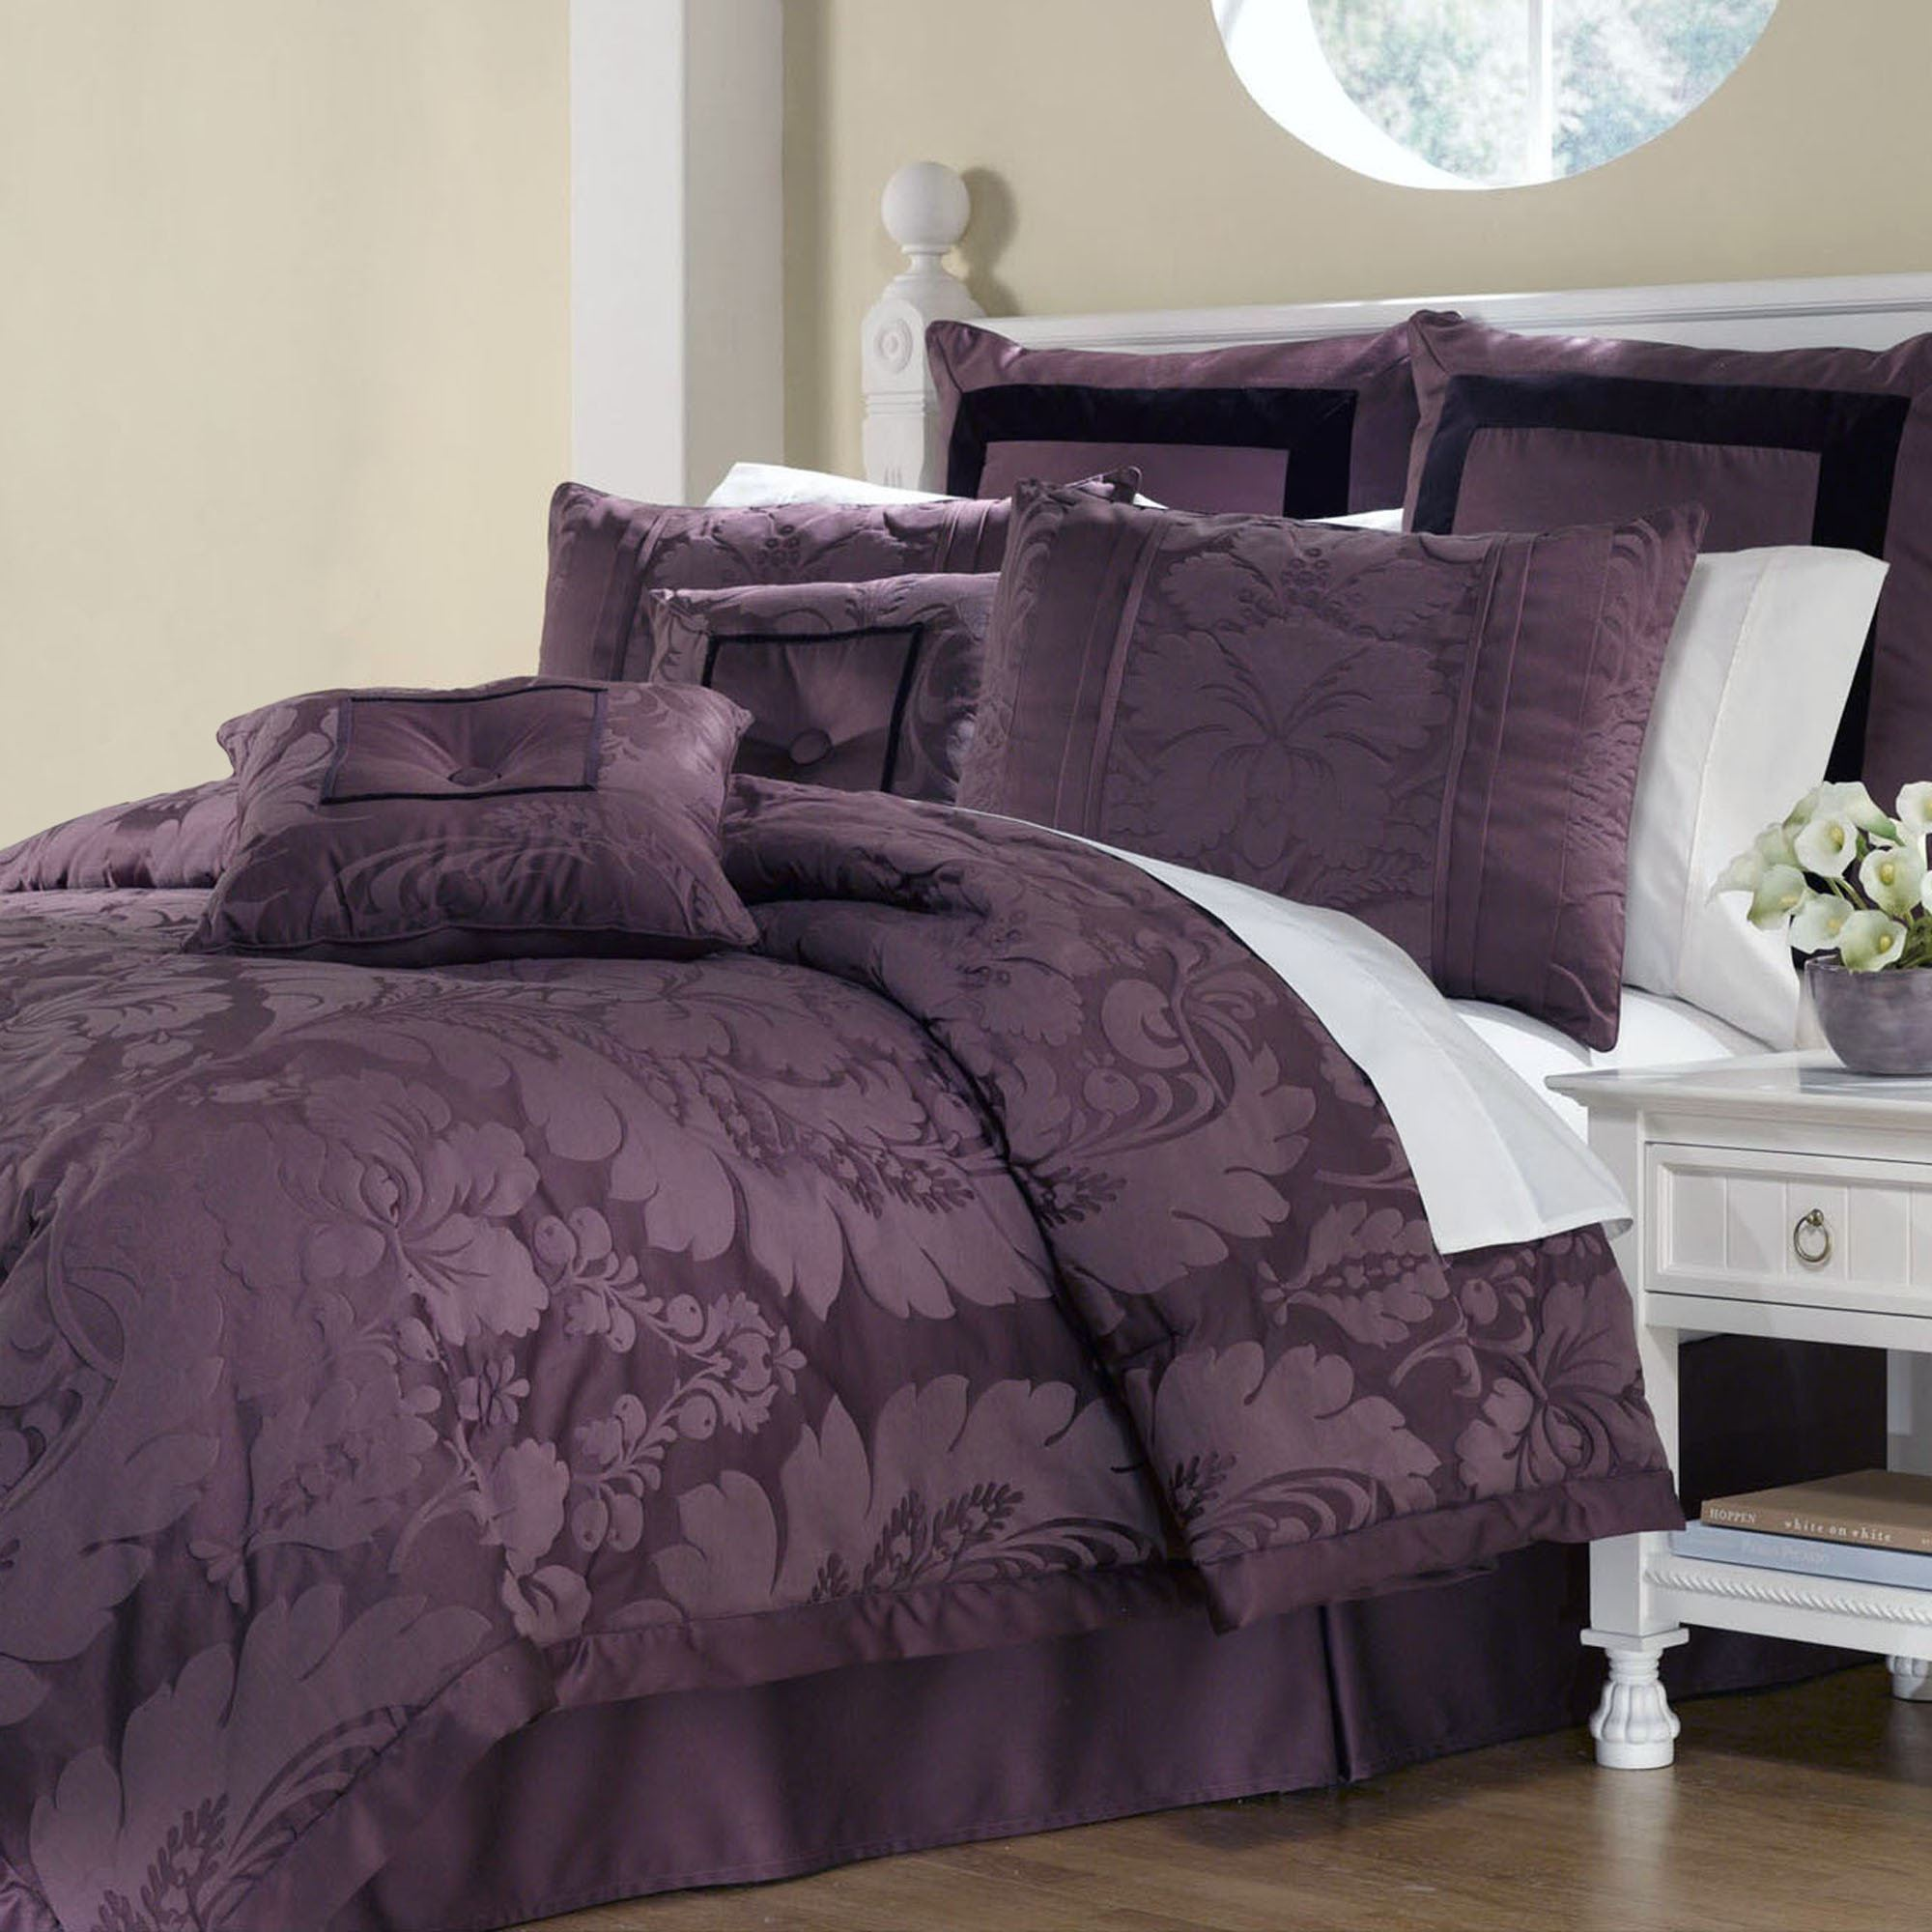 bedding set unicorn elegant index purple butterfly sets alicemall flying white cover print duvet tified snowflake bed soft